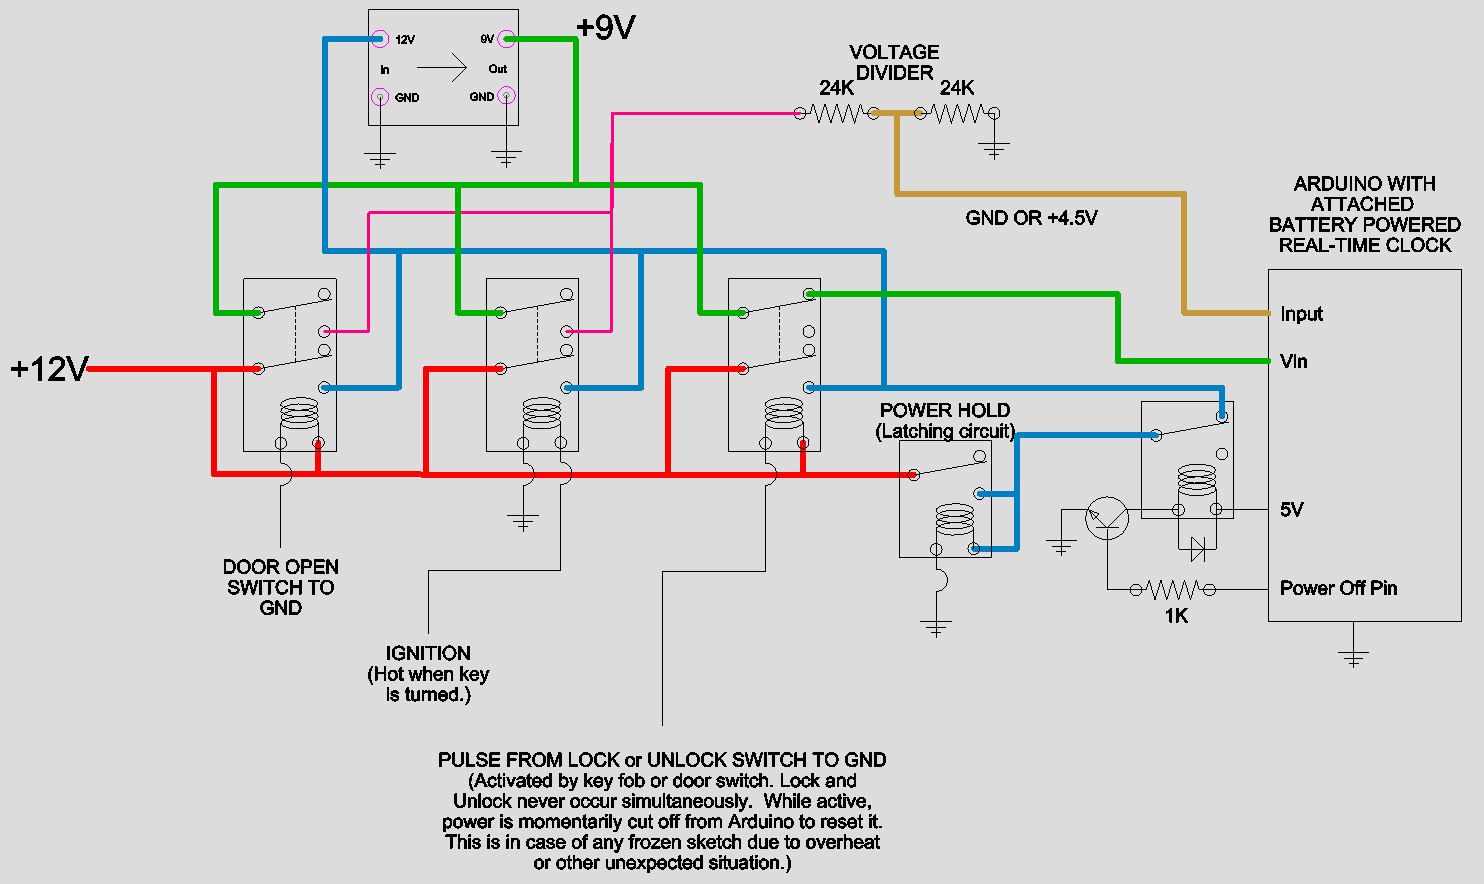 Continuous Voltage To A Latching Relay Coil Controlling Switch With Driver I Know The Car Is Noisy And Unstable But My Knowledge Isnt Sensitive Like Mircocontroller Arduino Itself Getting